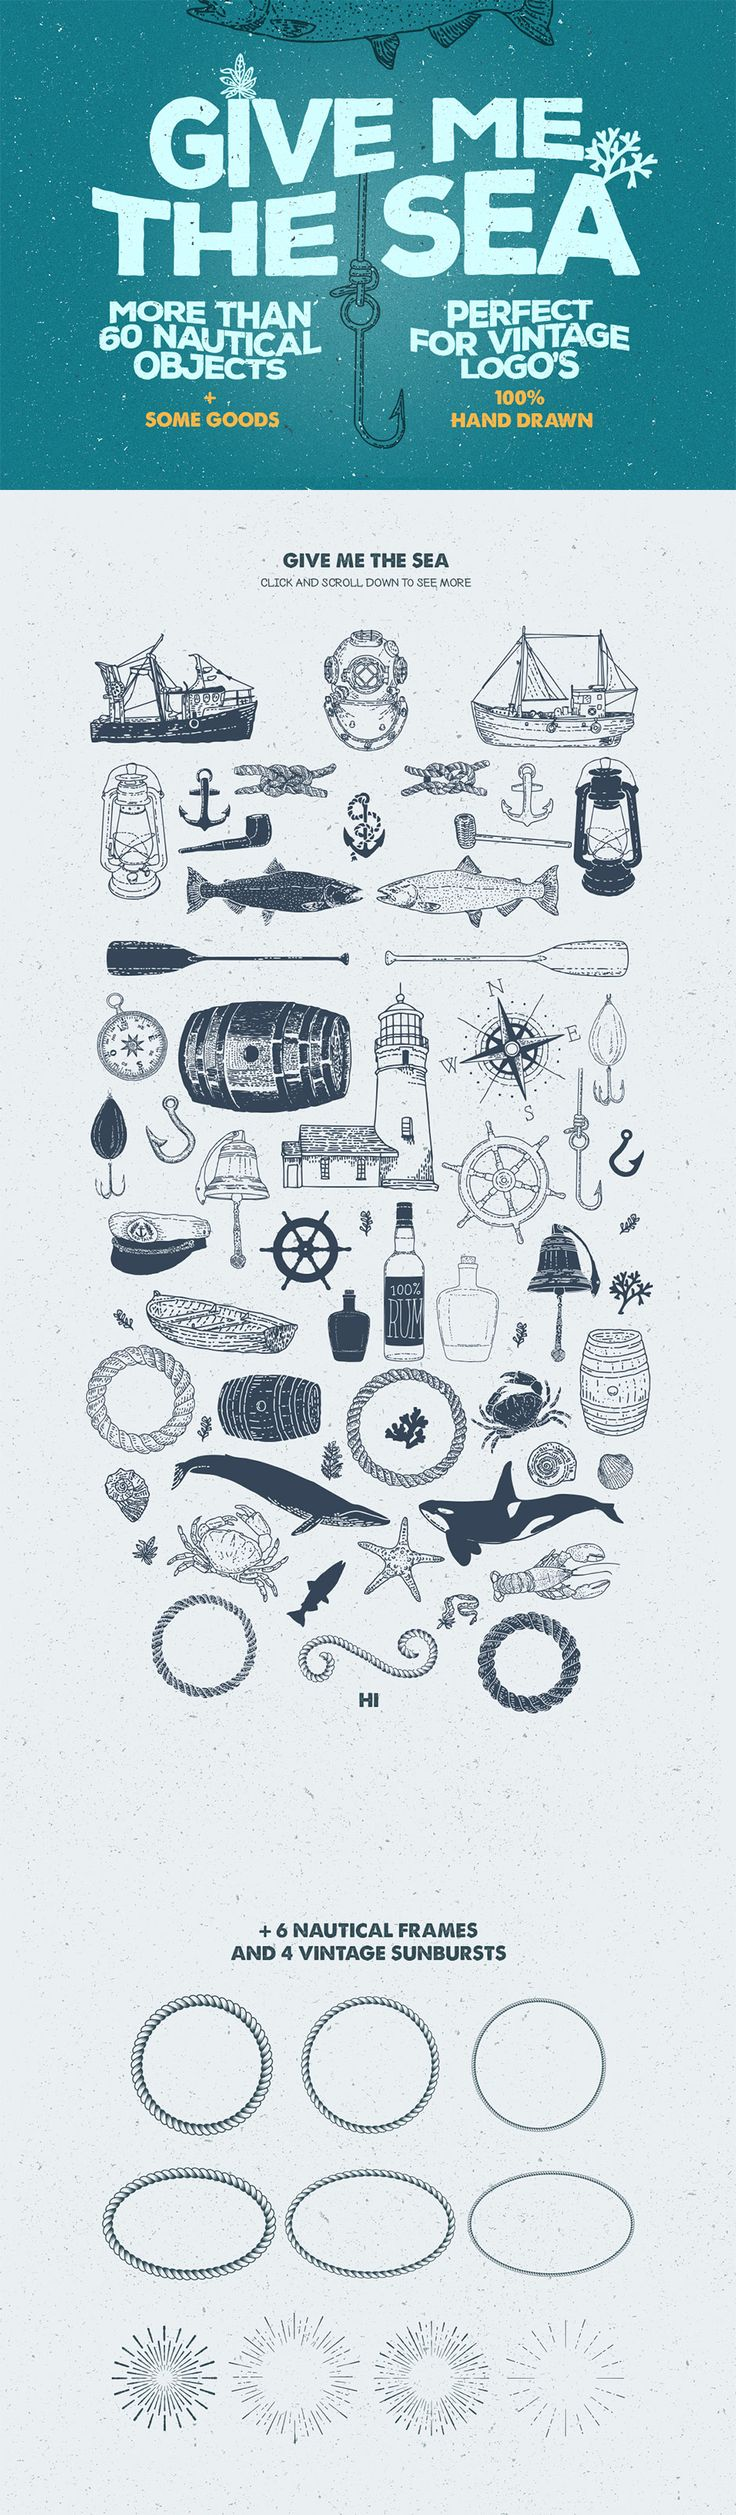 Give Me The Nautical Hand Drawn Pack by Pavel | The Comprehensive, Creative Vectors Bundle Mar 2015 from Design Cuts